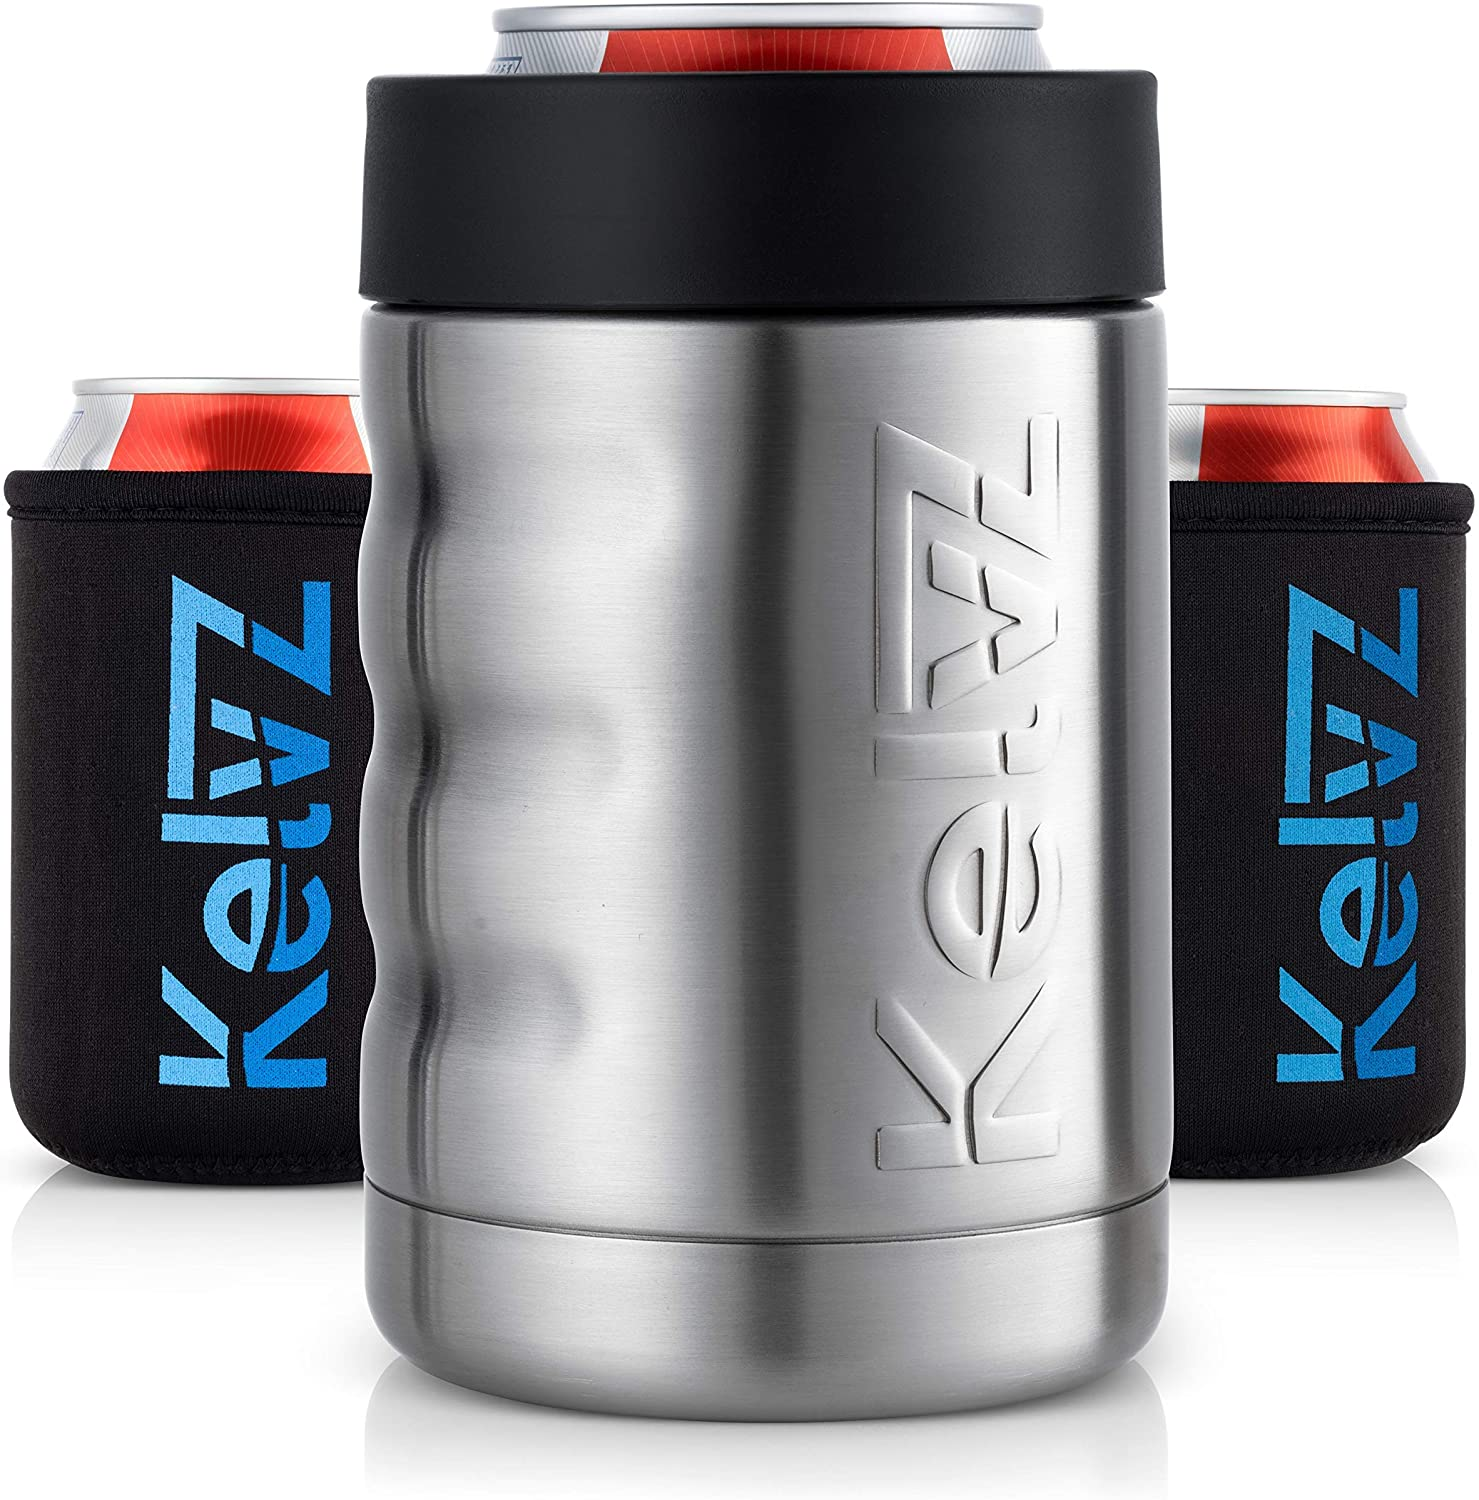 Kelvs Insulated Can Cooler